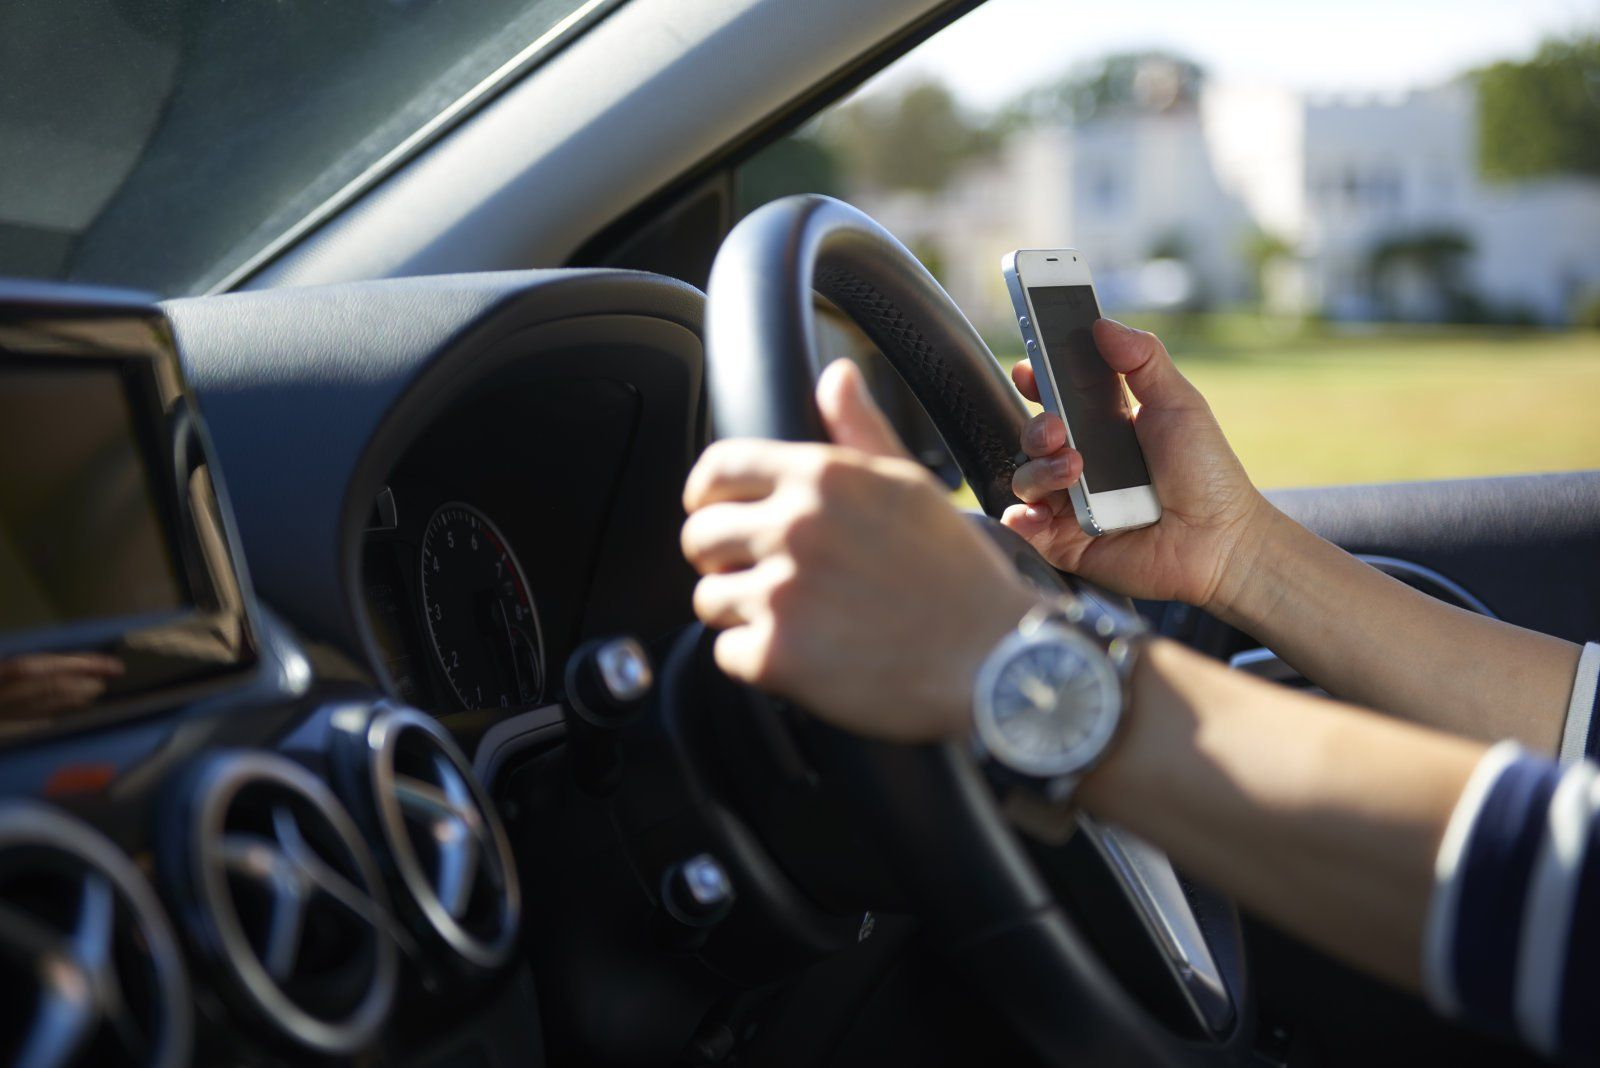 UK ministers to discuss safe driving modes with phone makers - http://www.sogotechnews.com/2016/12/19/uk-ministers-to-discuss-safe-driving-modes-with-phone-makers/?utm_source=Pinterest&utm_medium=autoshare&utm_campaign=SOGO+Tech+News